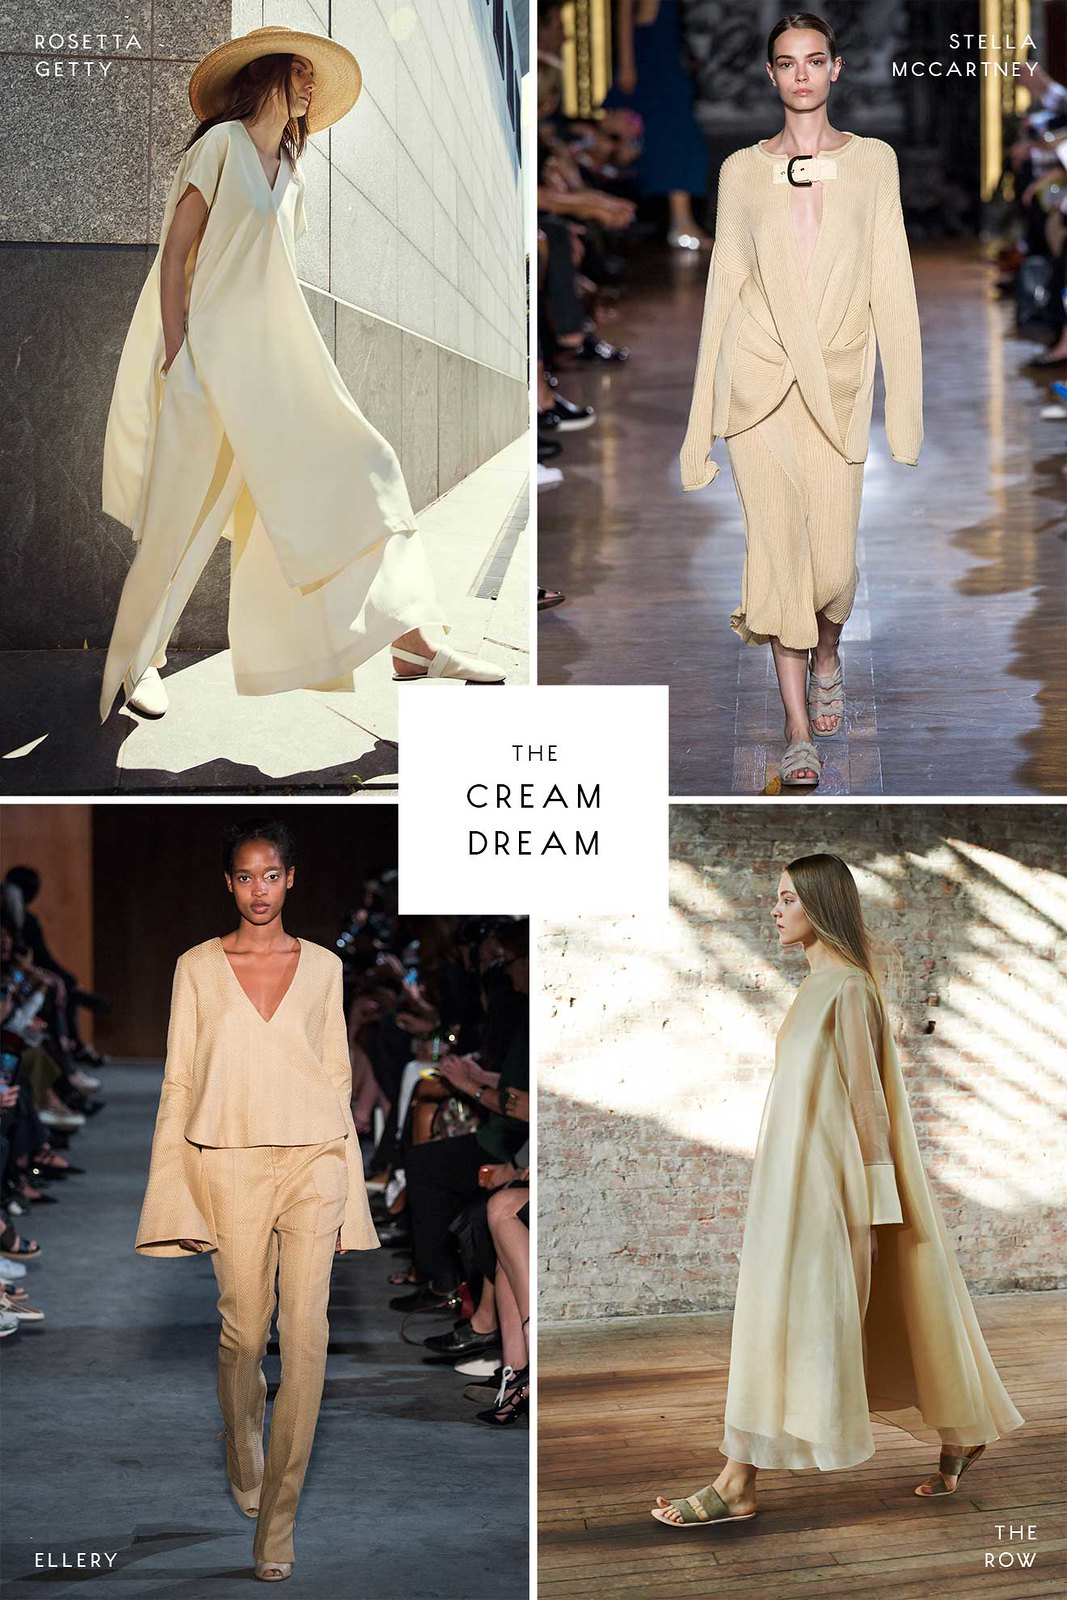 miss-moss-ss15-cream-dream